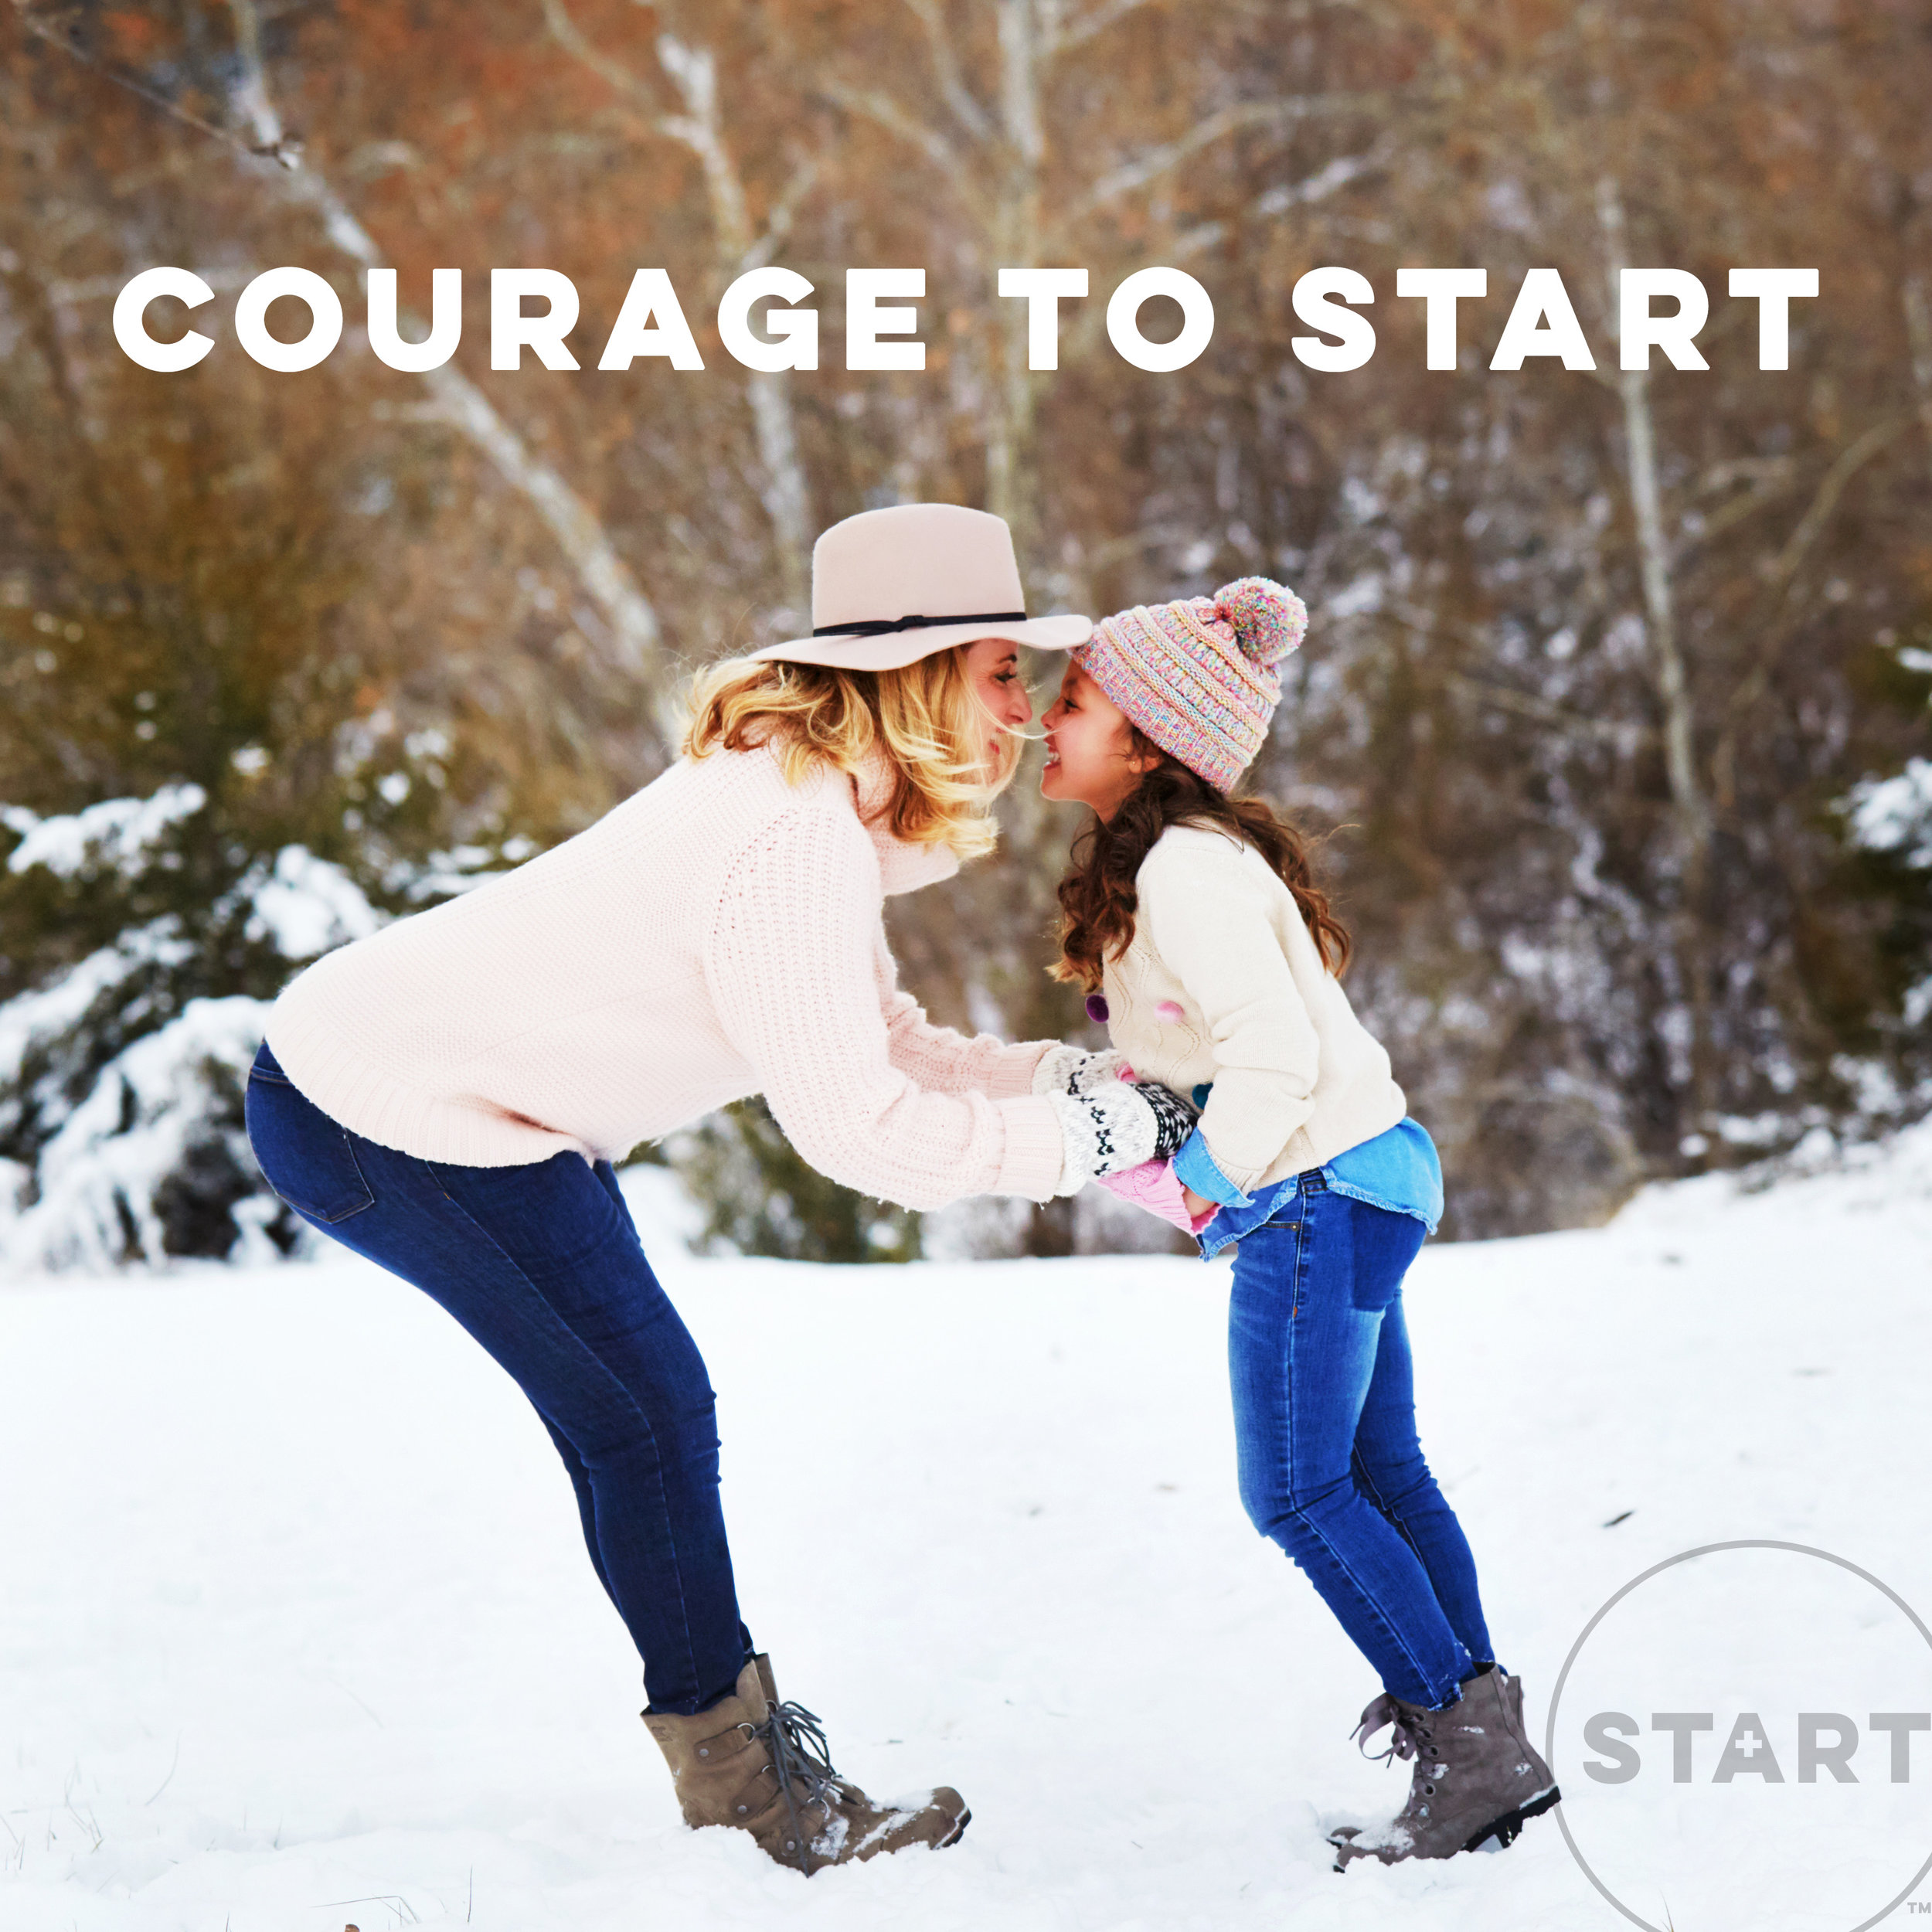 courage to start.jpg